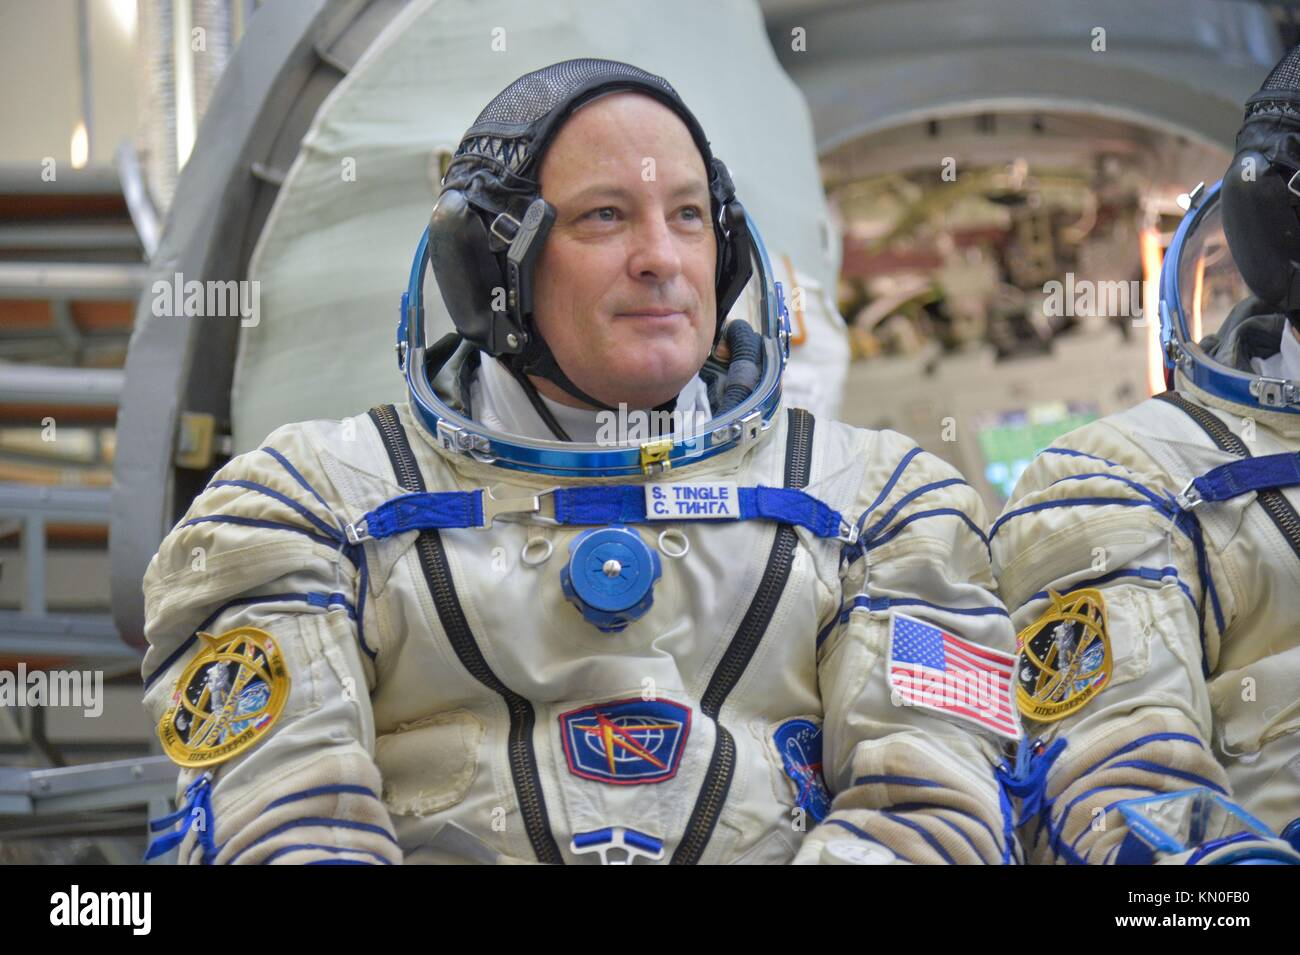 NASA International Space Station Expedition 54-55 prime crew member American astronaut Scott Tingle participates - Stock Image